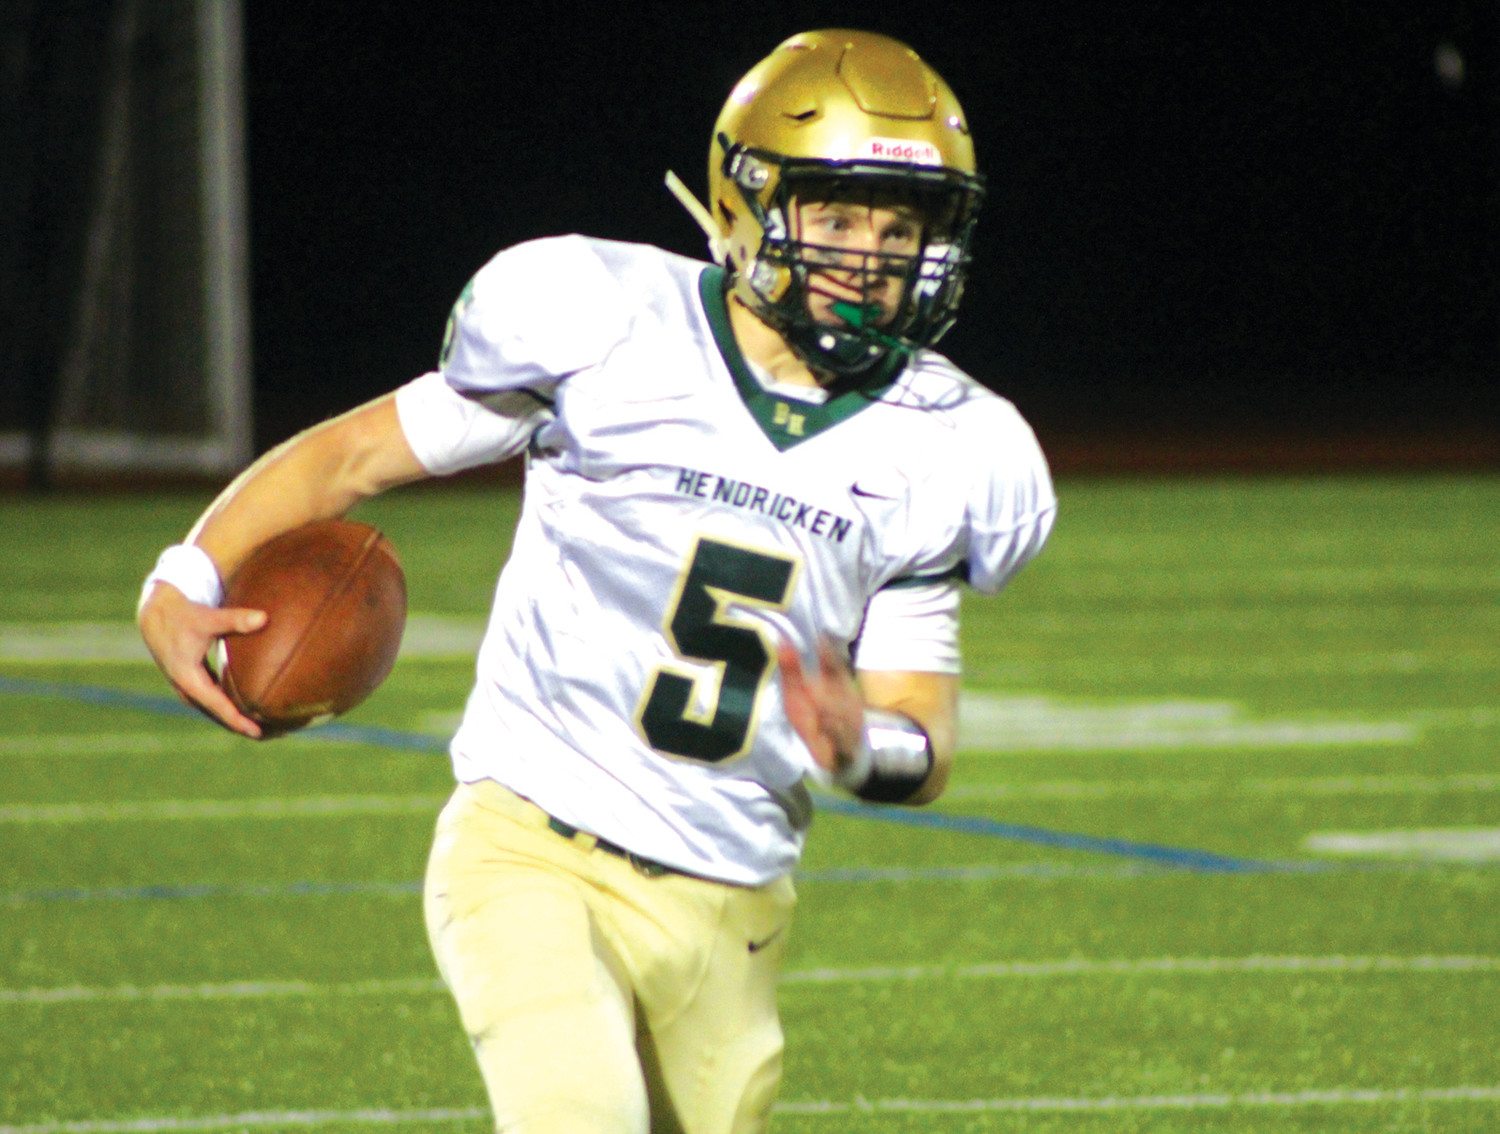 REMATCH: Bishop Hendricken quarterback Tom Comella runs against La Salle.